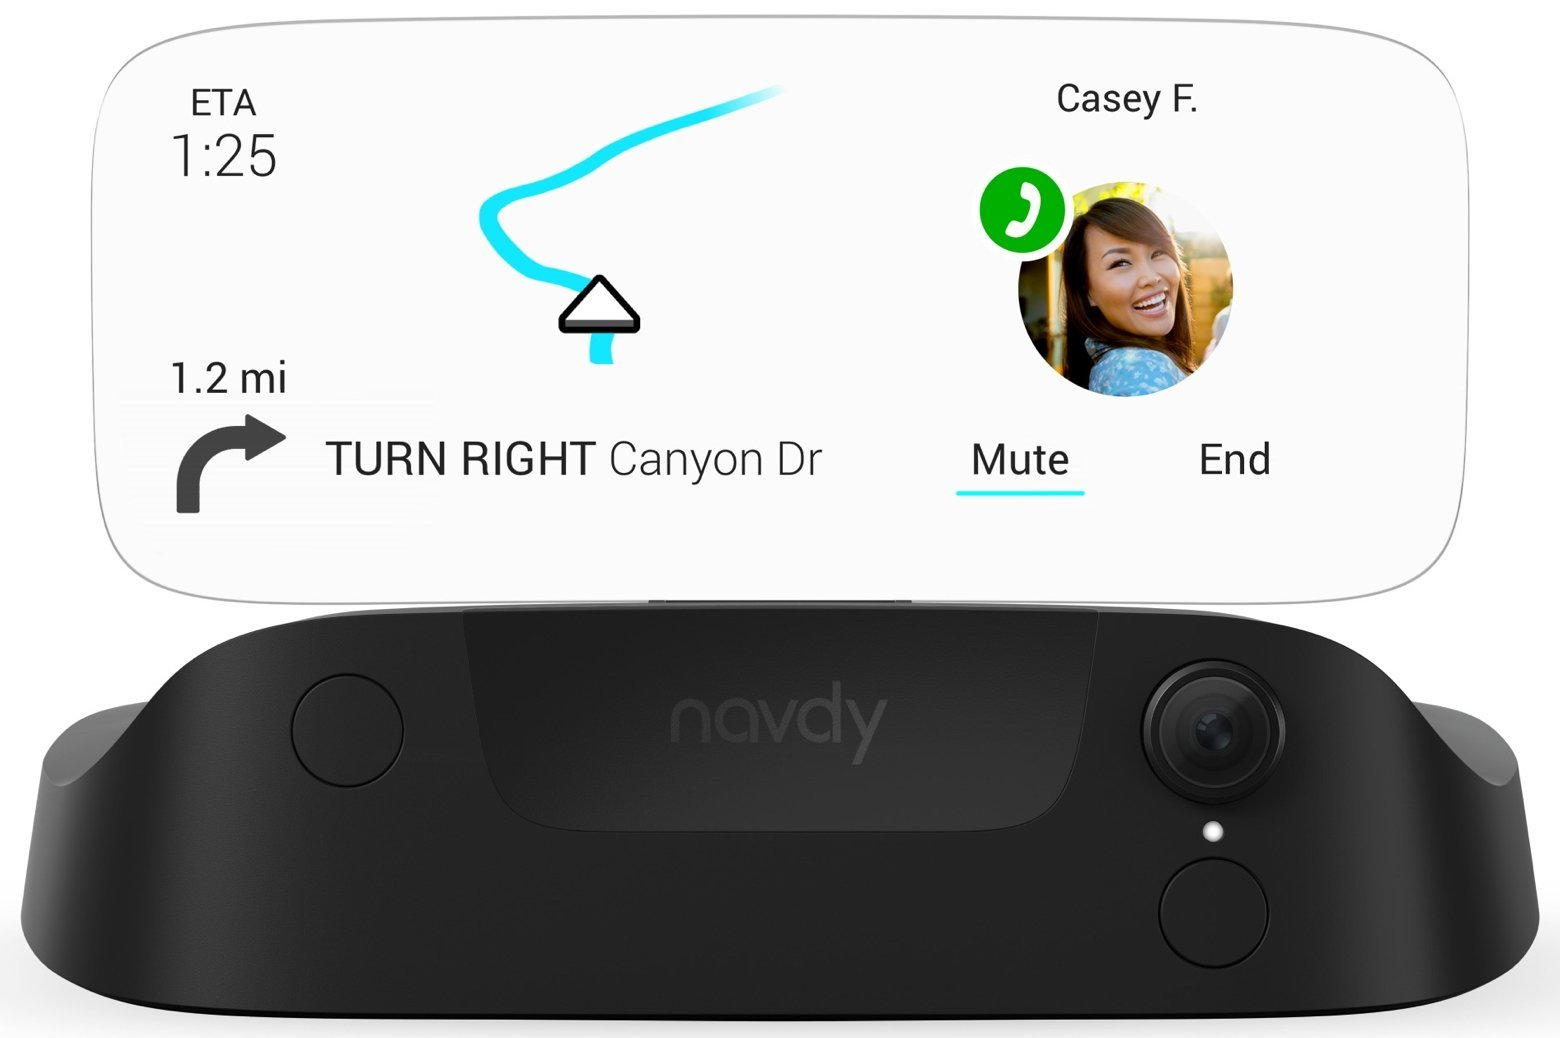 Navdy – Heads Up Display & GPS Navigation - Stay Connected with Maps, Calls, Texts & Music Projected Through Your Windshield